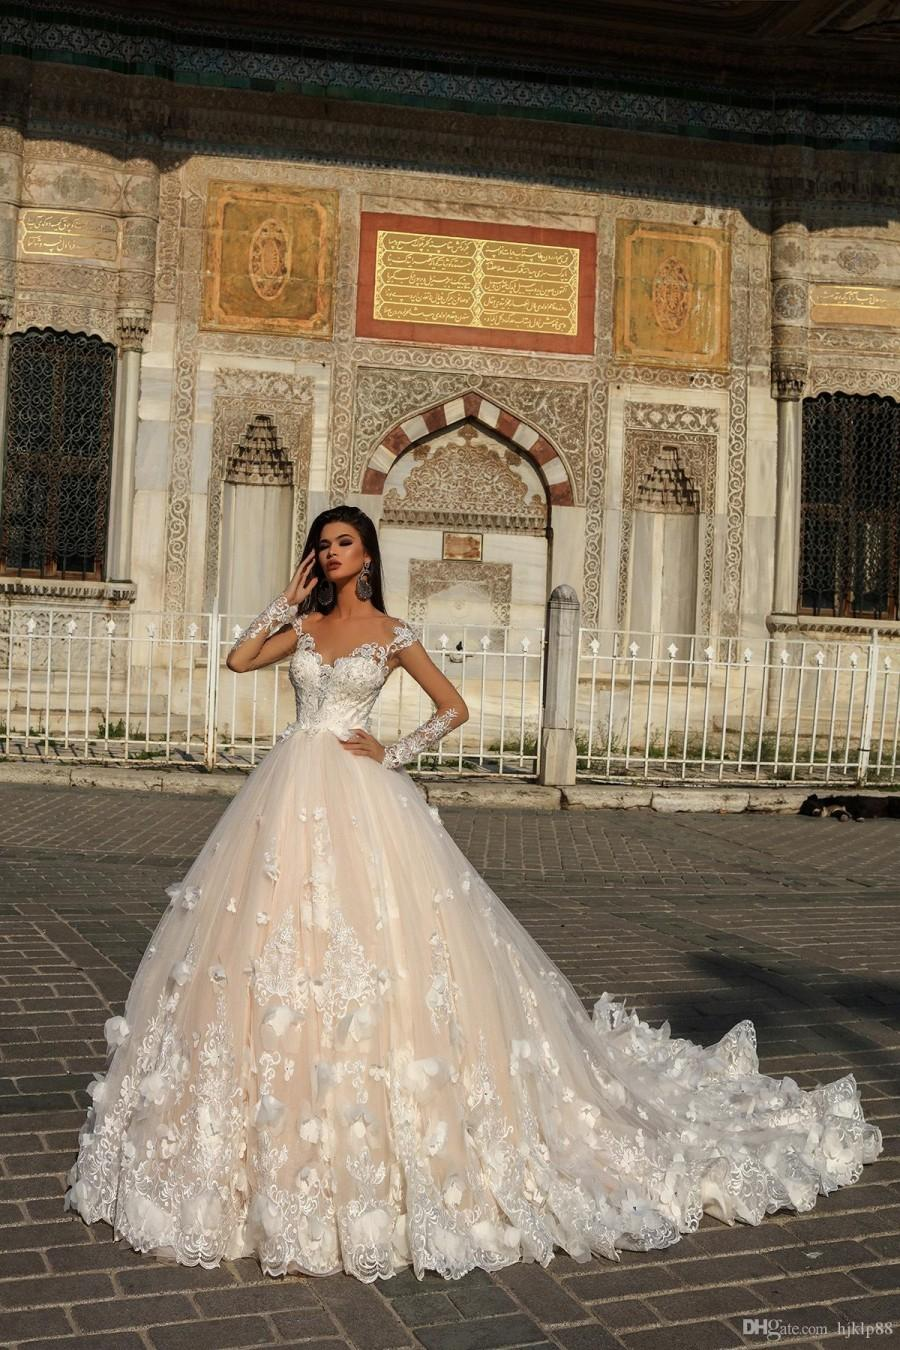 Свадьба - Discount 2019 New A Line Wedding Dresses Lace Applique 3D Floral Appliques 3141 MELEK Weddings Dresses Weding Dresses From Hjklp88, $128.15